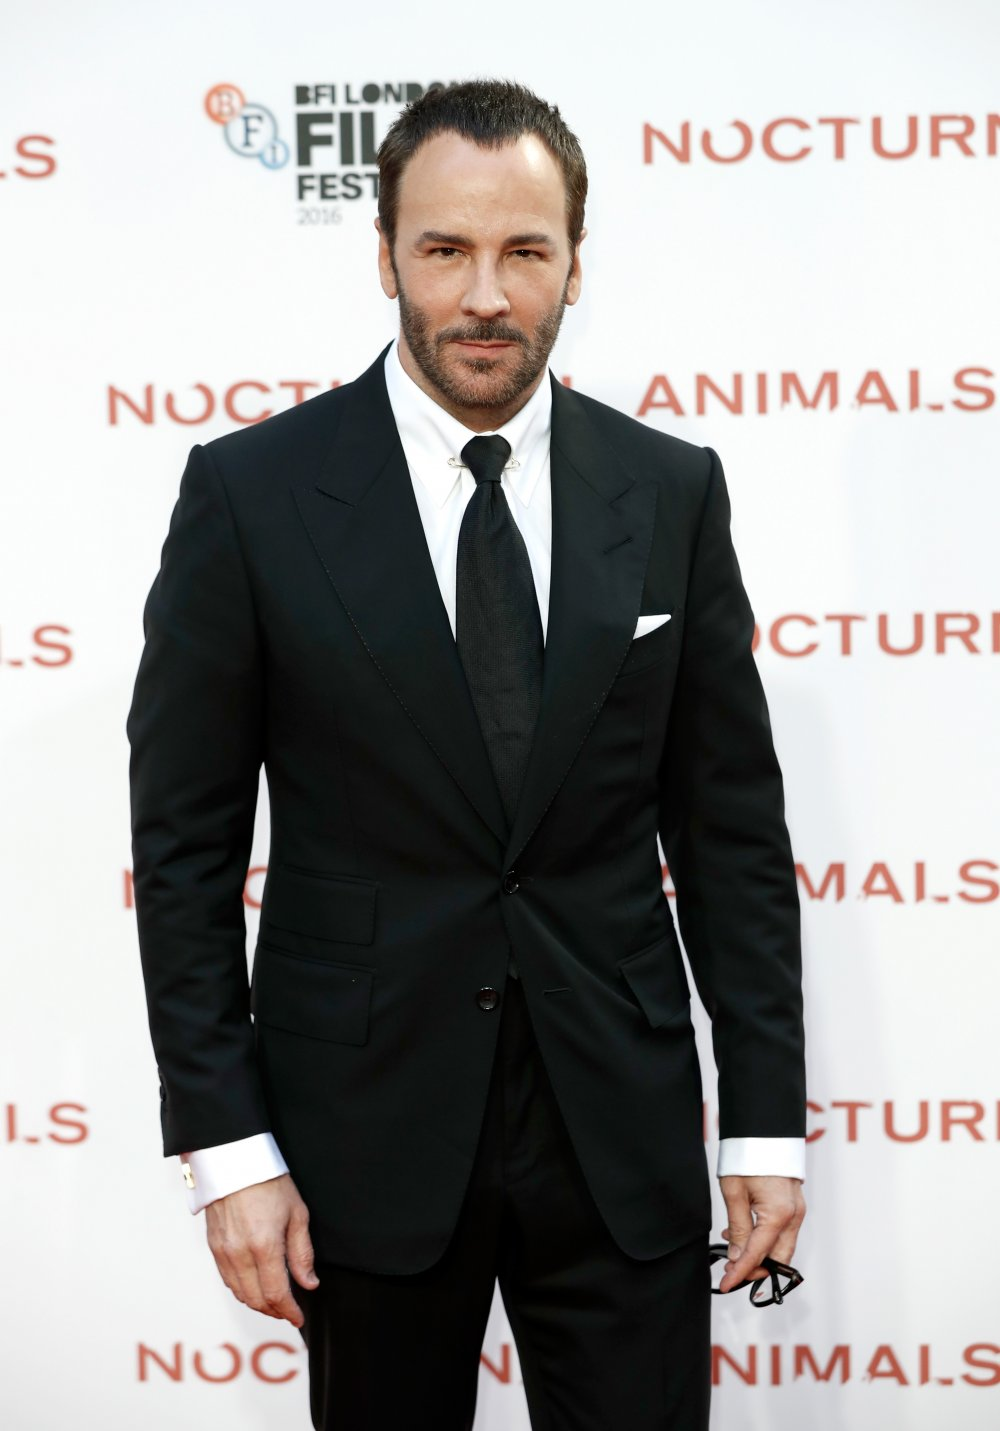 Tom Ford attends the Nocturnal Animals Headline Gala during the 60th BFI London Film Festival